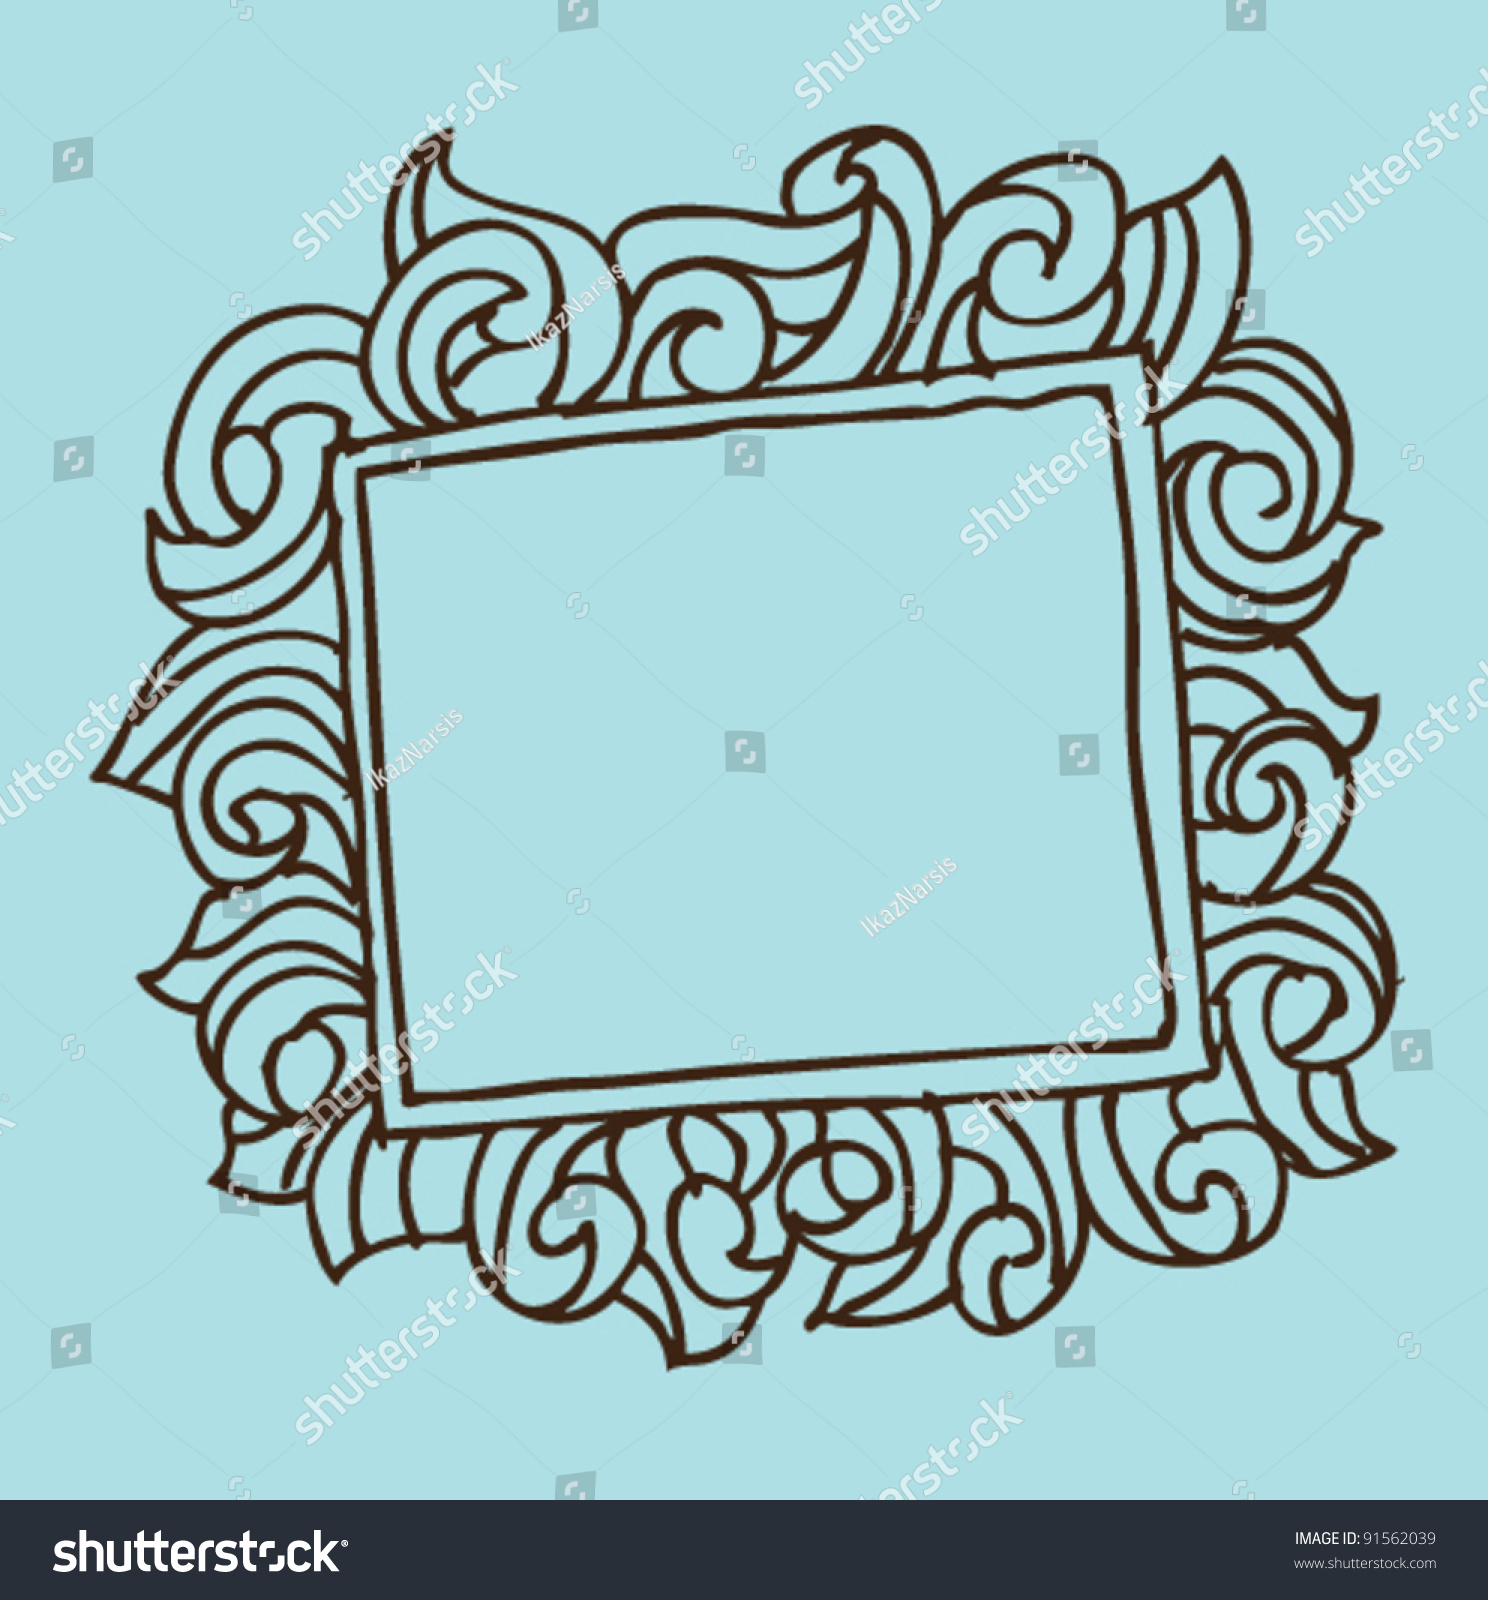 Doodle Hand Draw Frame Stock Photo (Photo, Vector, Illustration ...